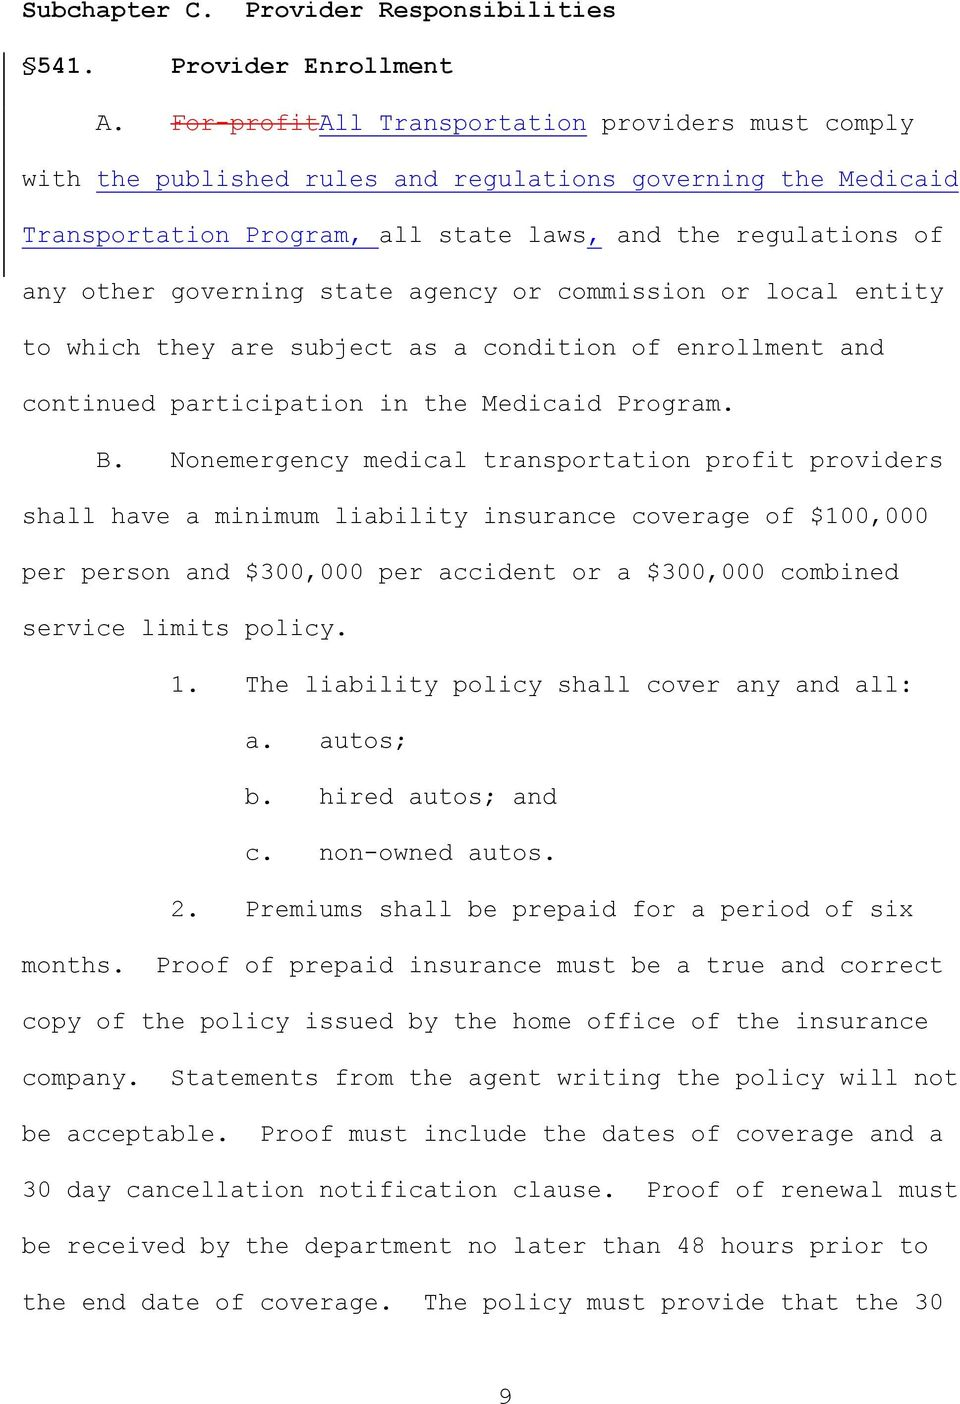 state agency or commission or local entity to which they are subject as a condition of enrollment and continued participation in the Medicaid Program. B.